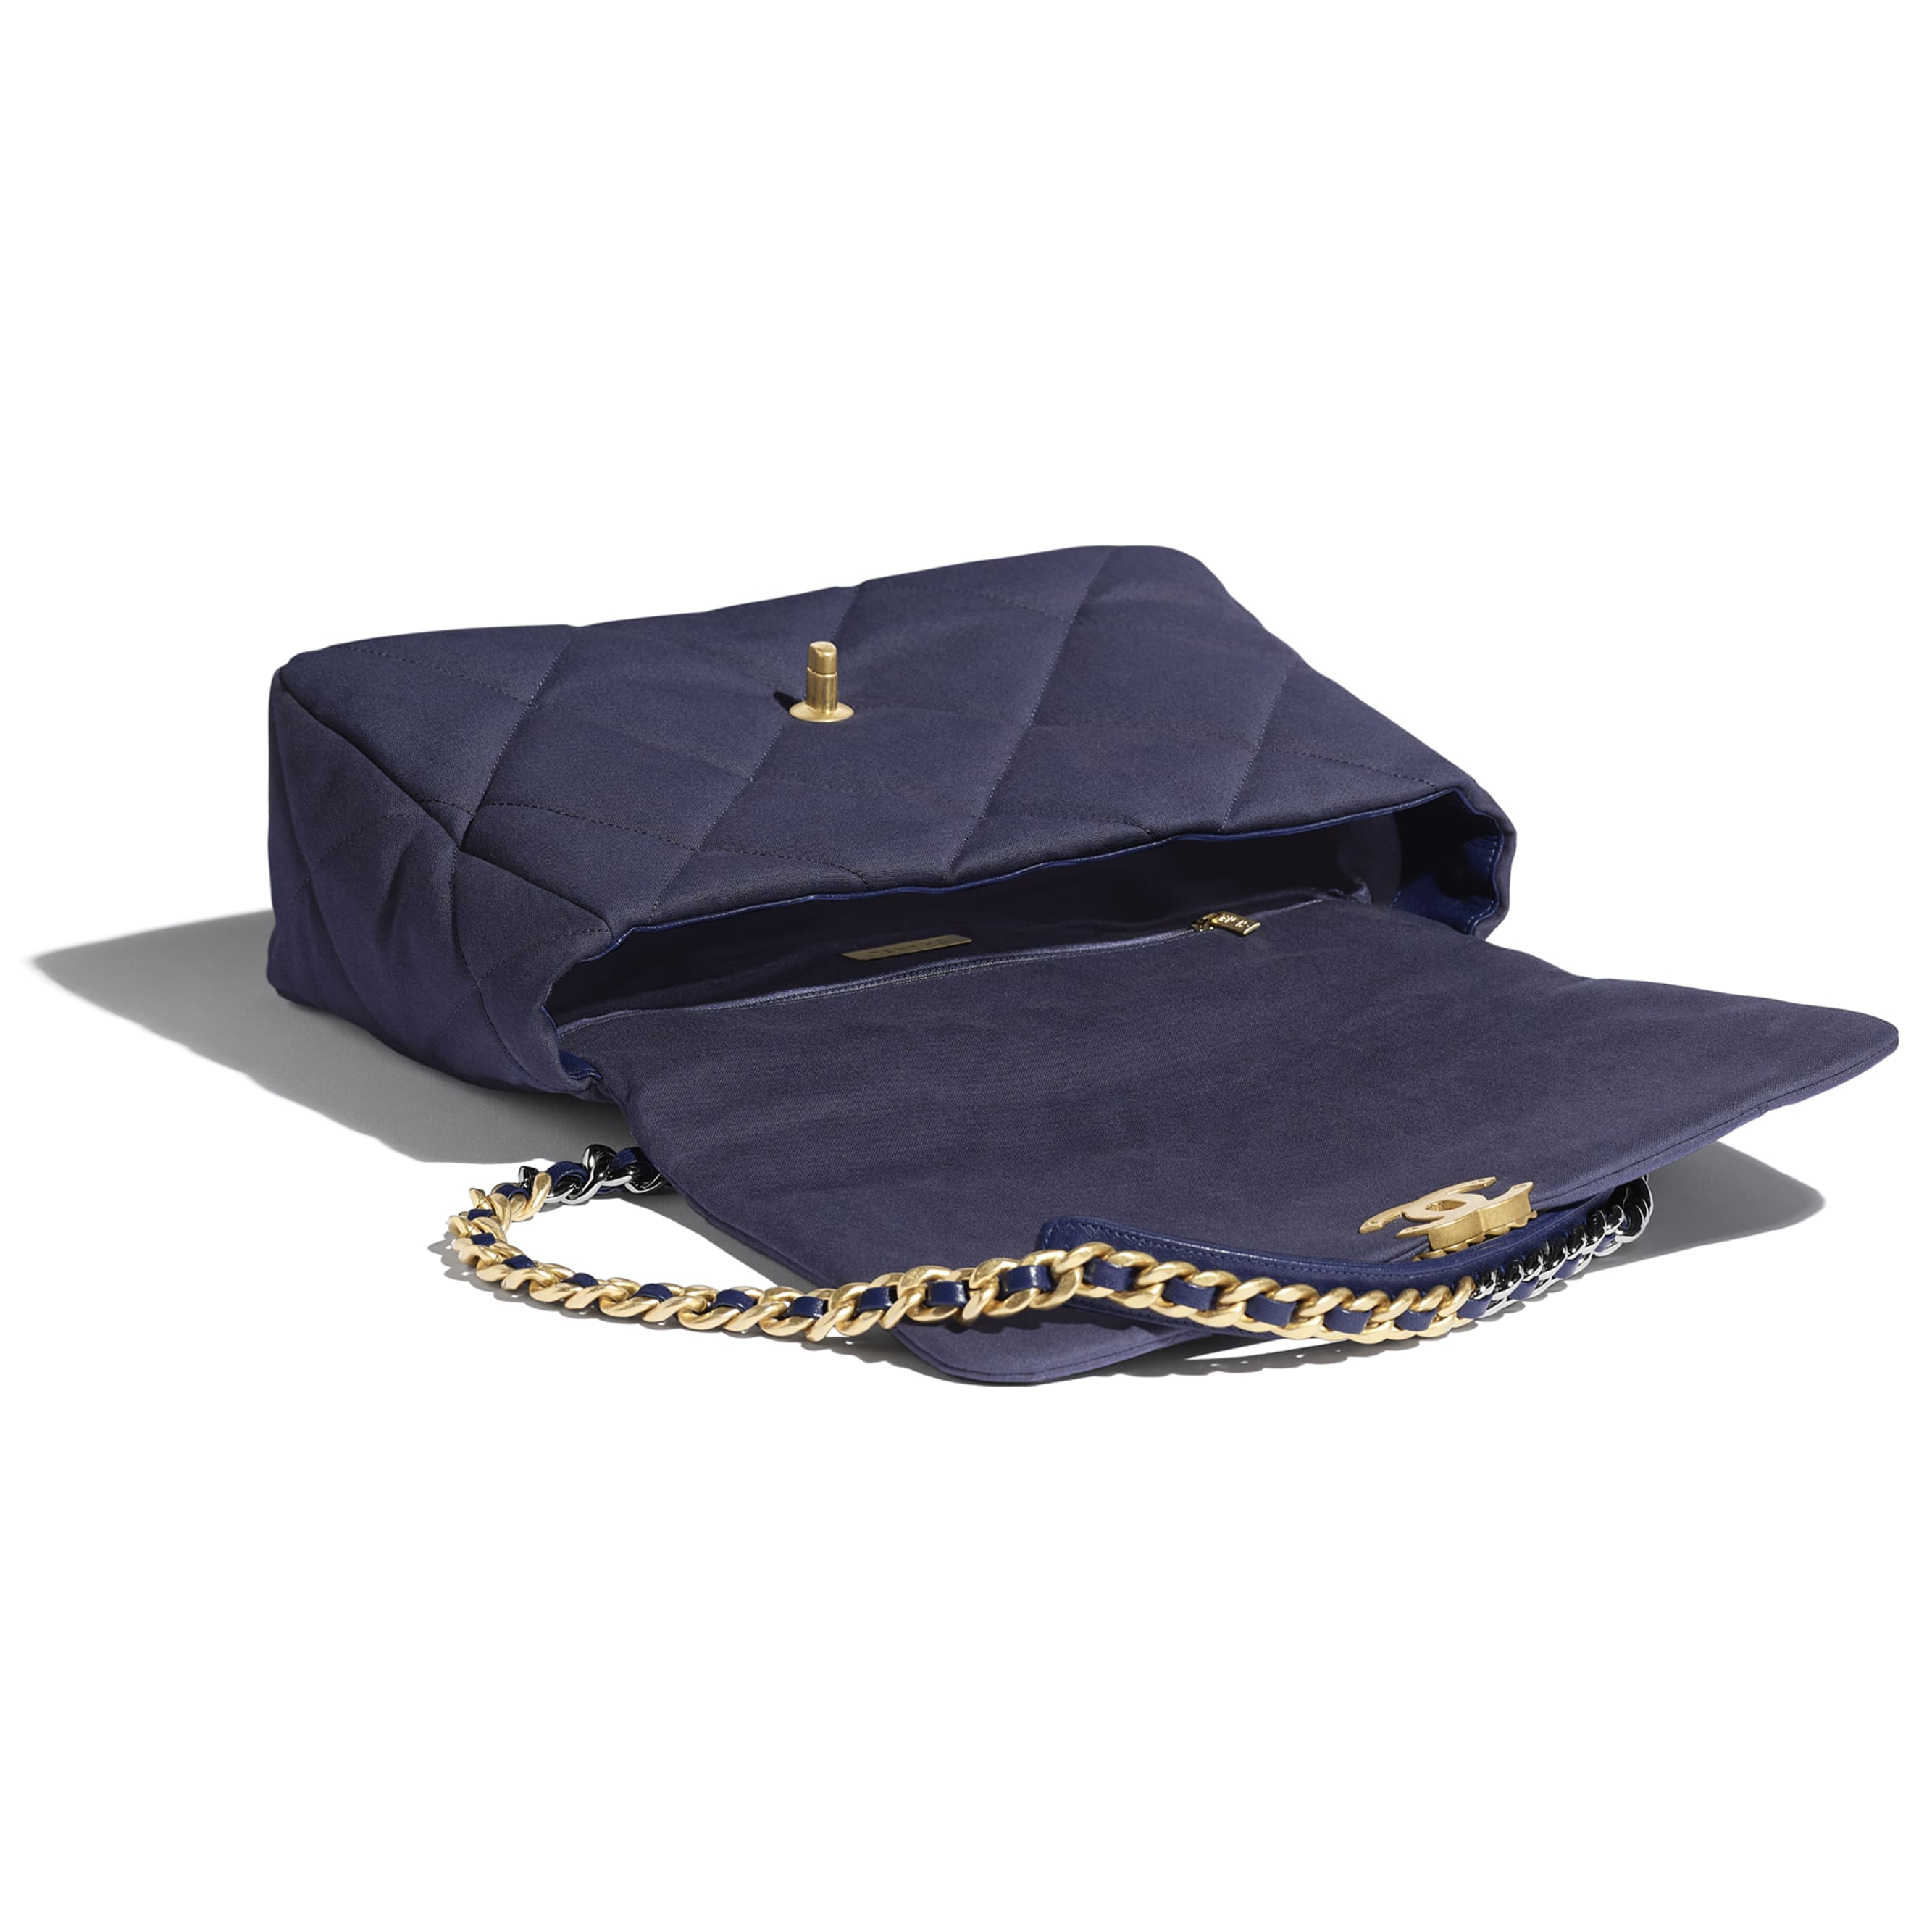 CHANEL 19 Maxi Flap Bag - Navy Blue - Cotton Canvas, Calfskin, Gold-Tone, Silver-Tone & Ruthenium-Finish Metal - Other view - see standard sized version